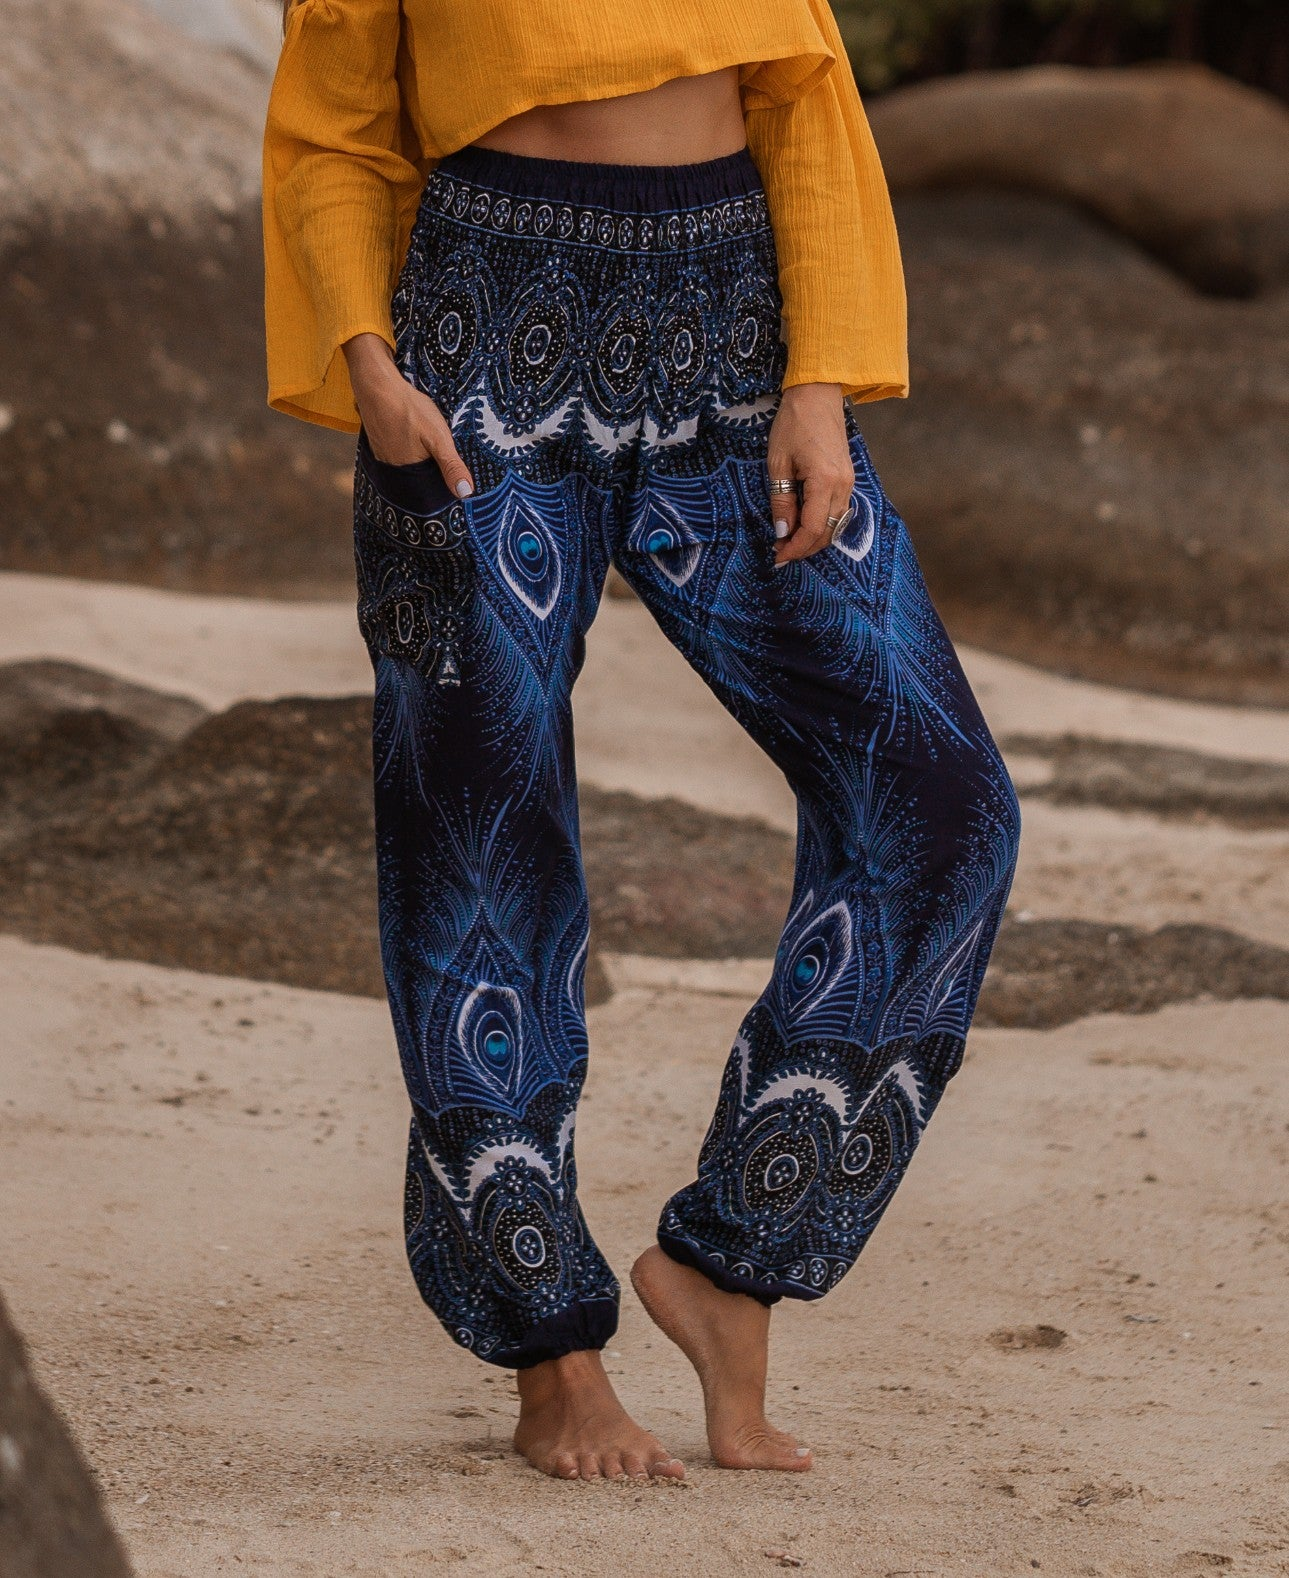 High Cut Harem Pants - Vibrant Peacock Feather Print - Blue